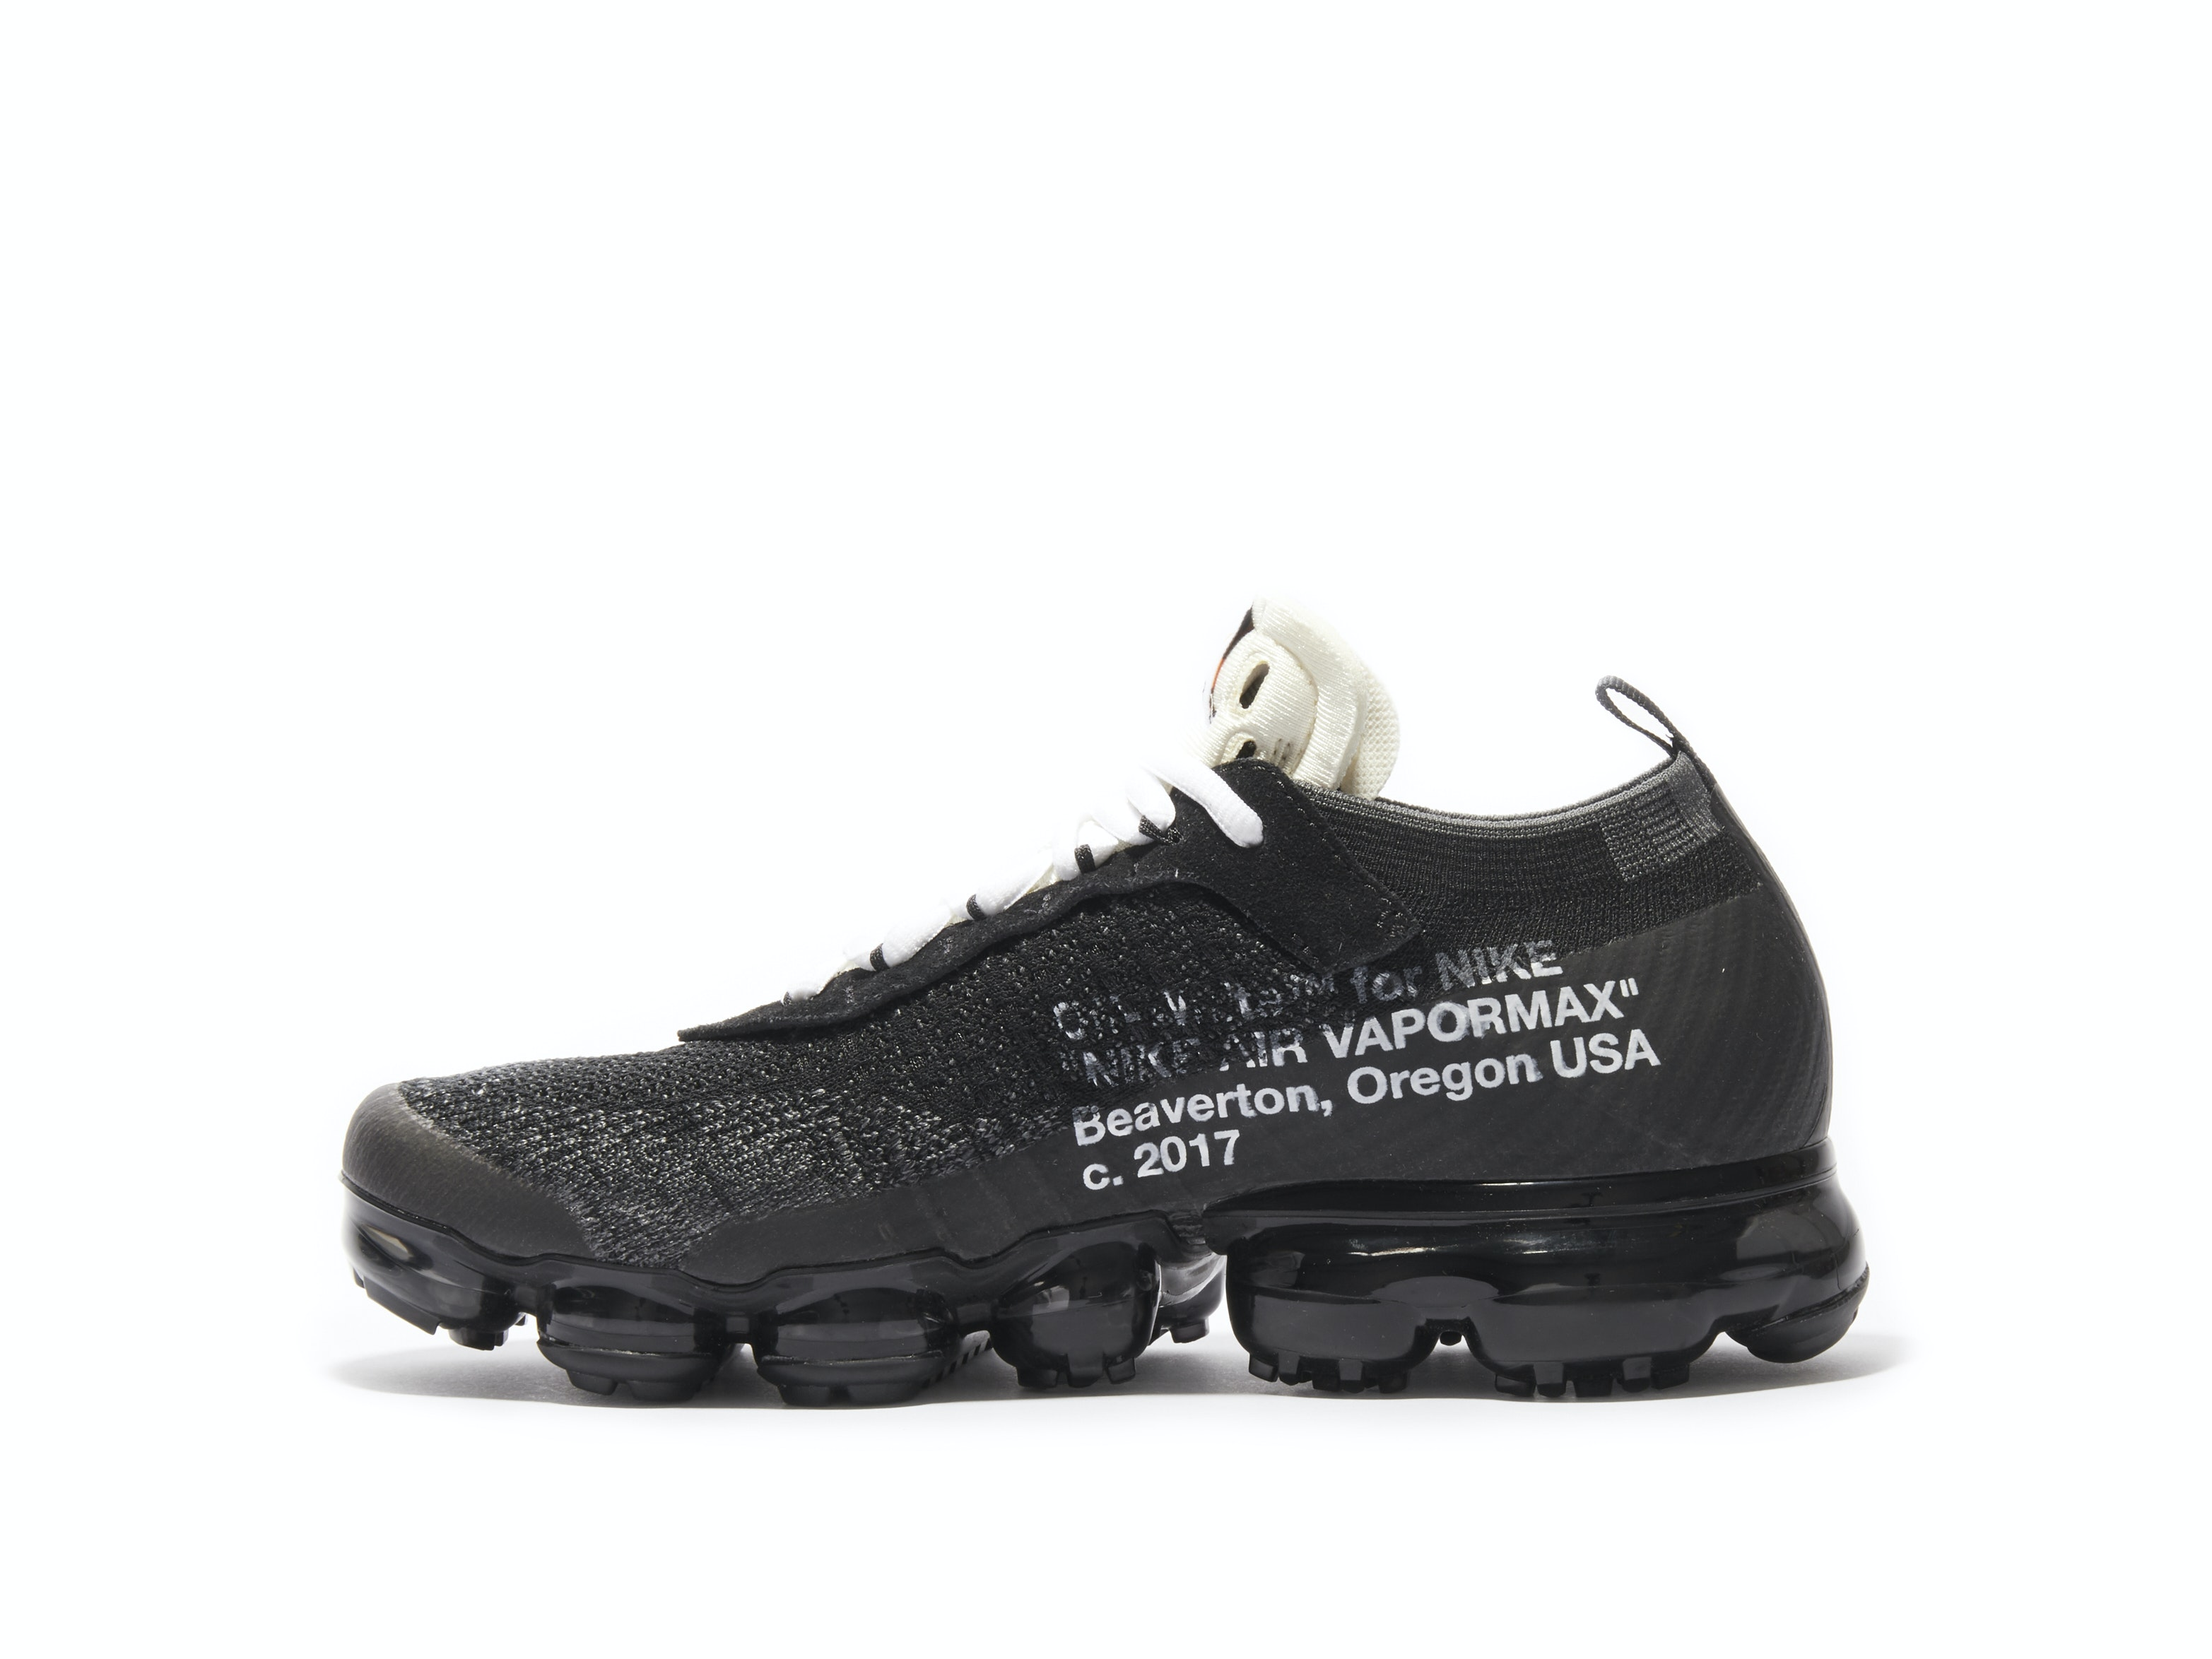 aa80988a14 Air Vapormax OG x Off-White. 100% AuthenticSold out! Nike / AA3831-001